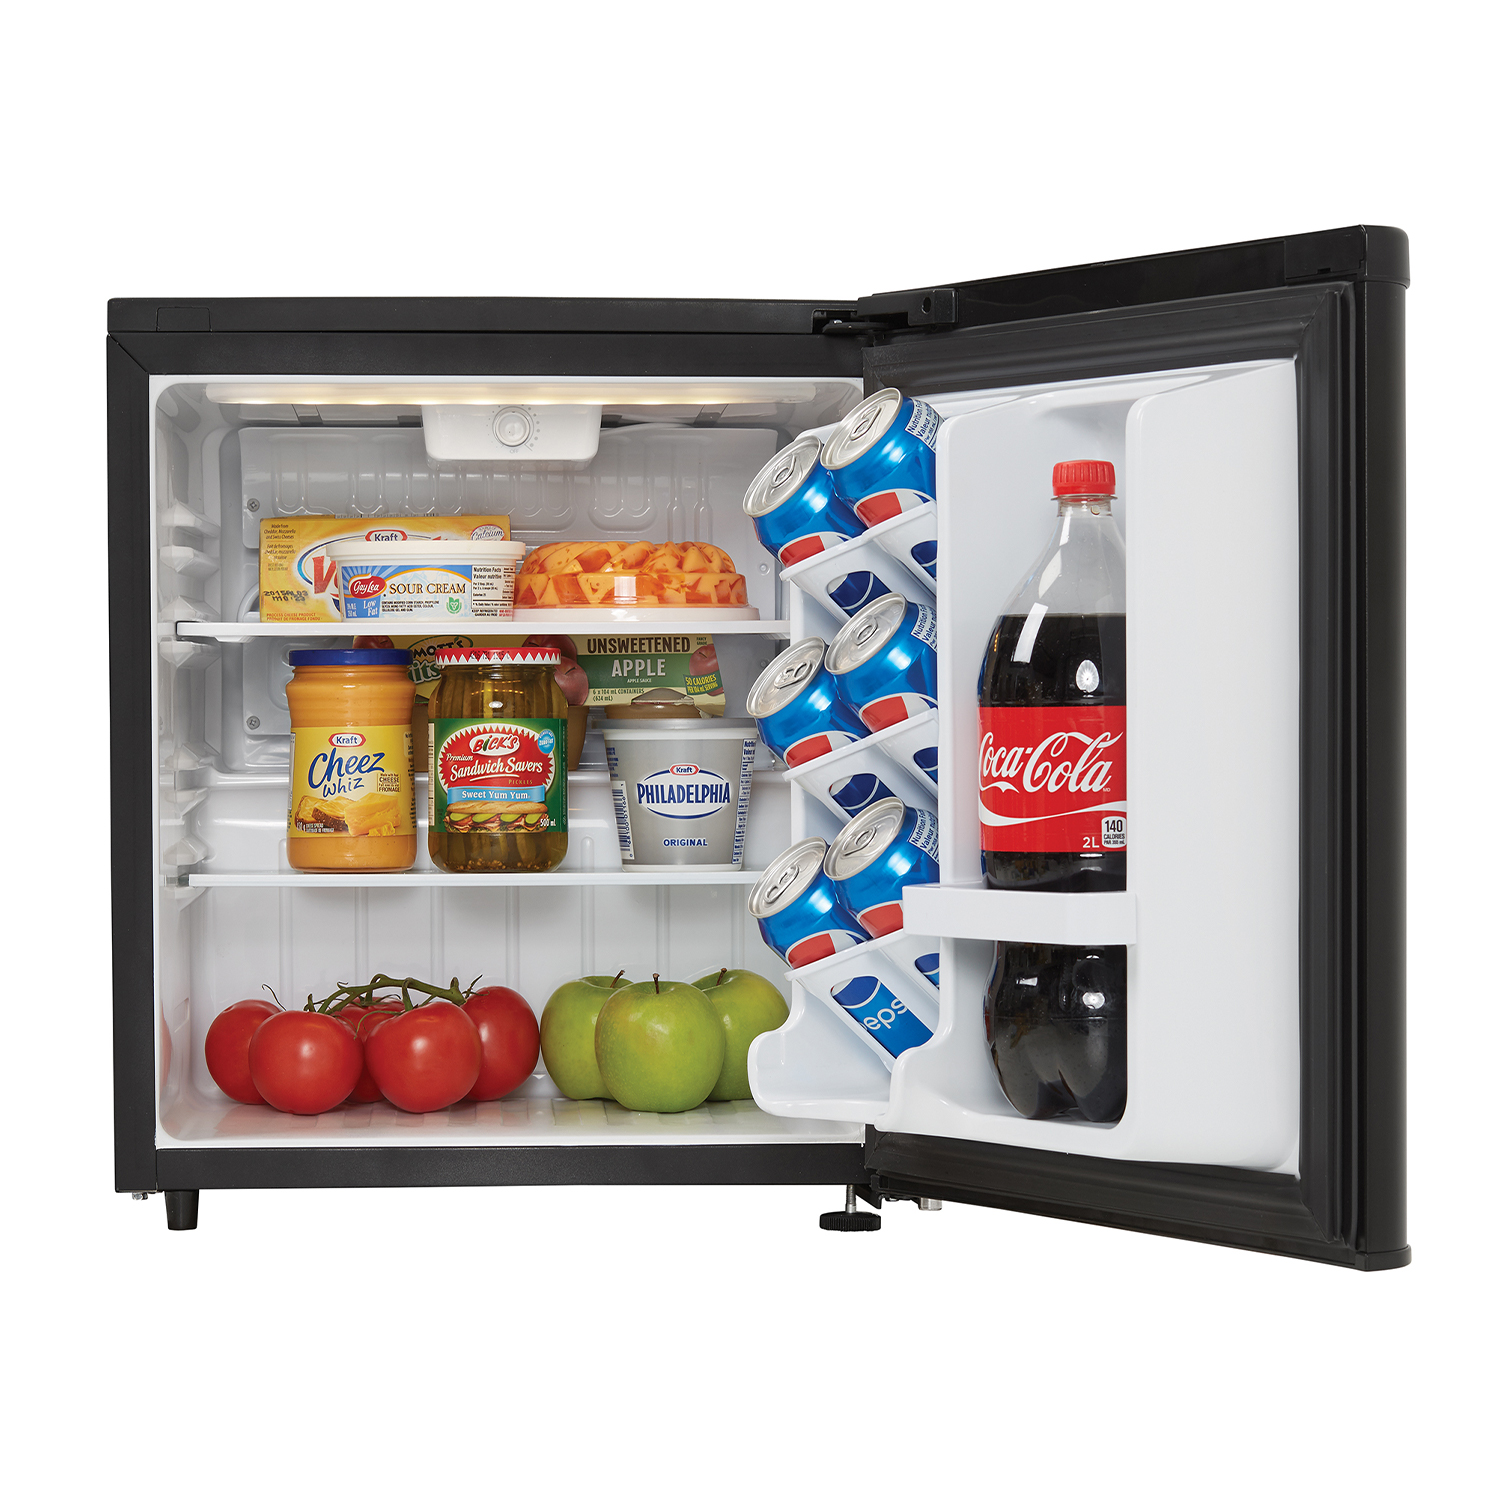 Danby-1-7-Cubic-Foot-Contemporary-Classic-Compact-Refrigerator-Stainless-Finish thumbnail 5